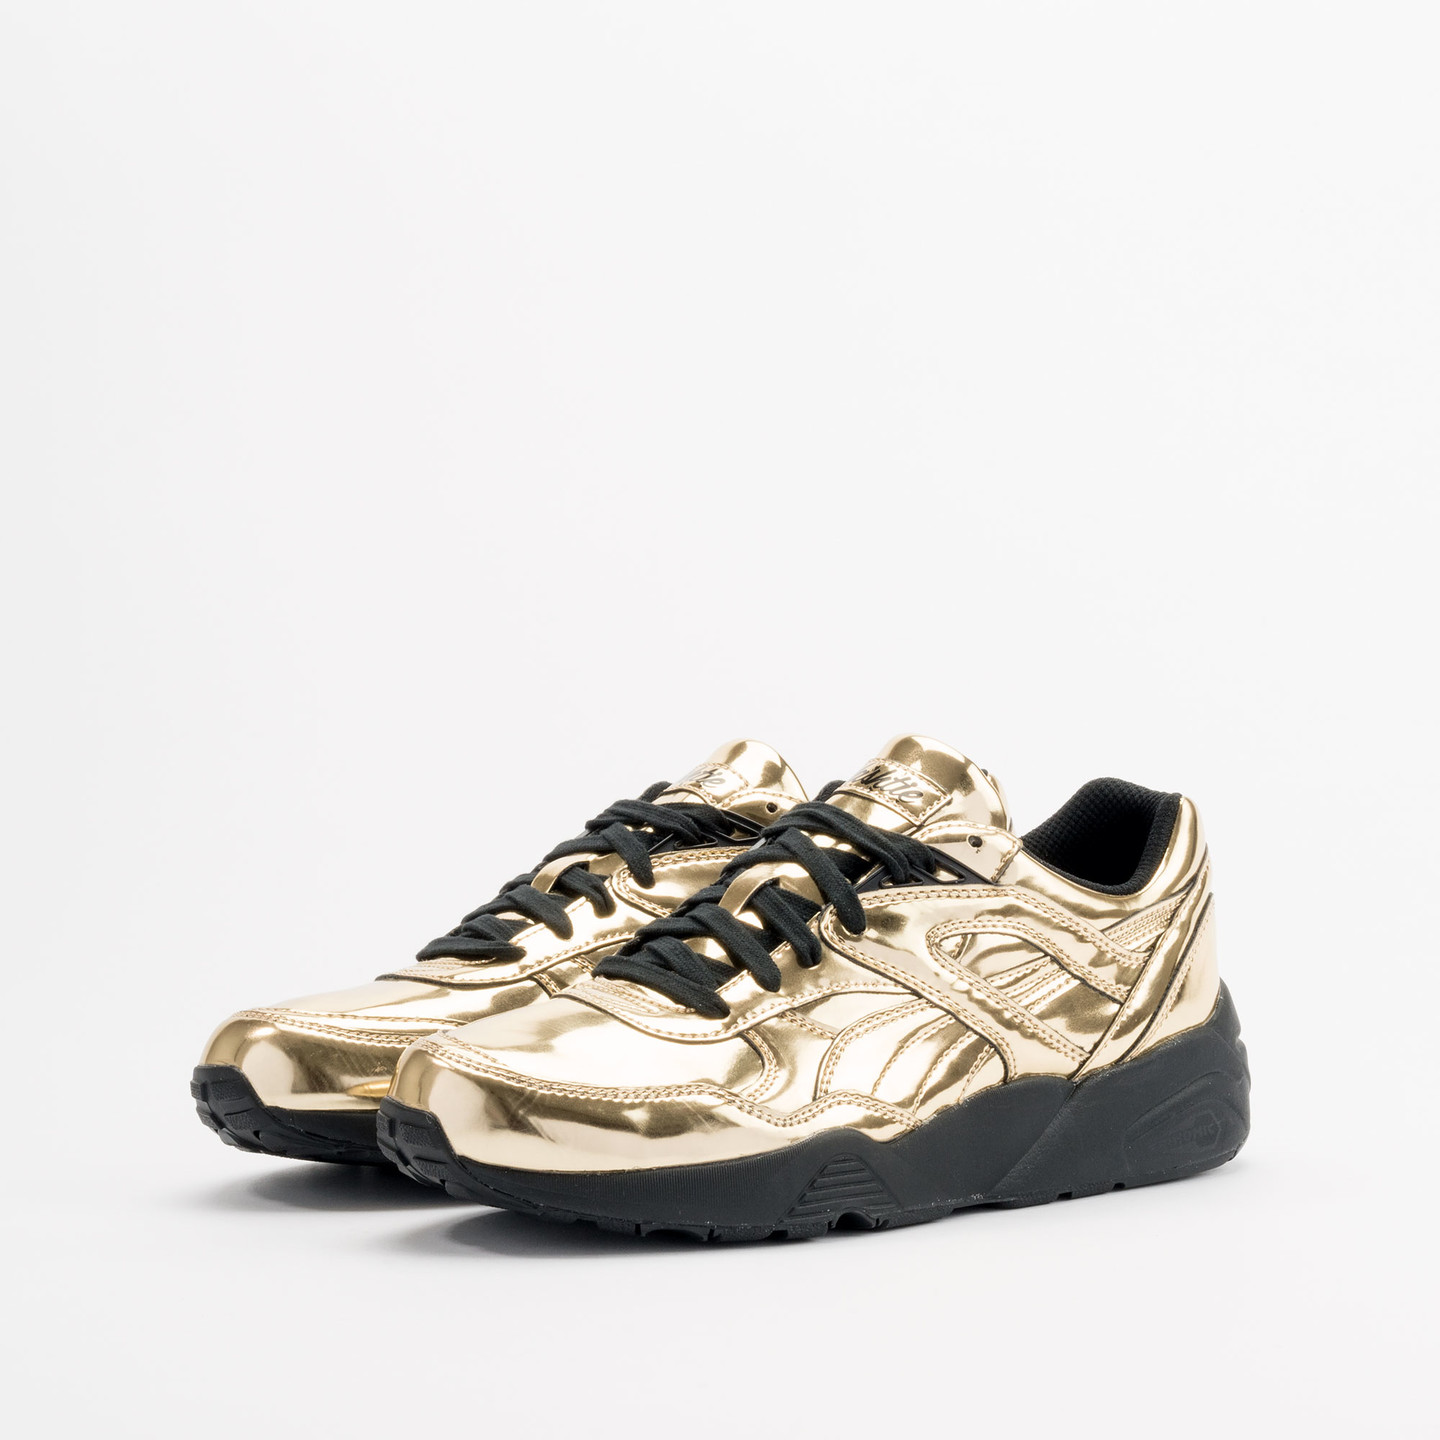 Puma R698 x Vashtie Gold Metallic Gold / Black 358838 01-42.5